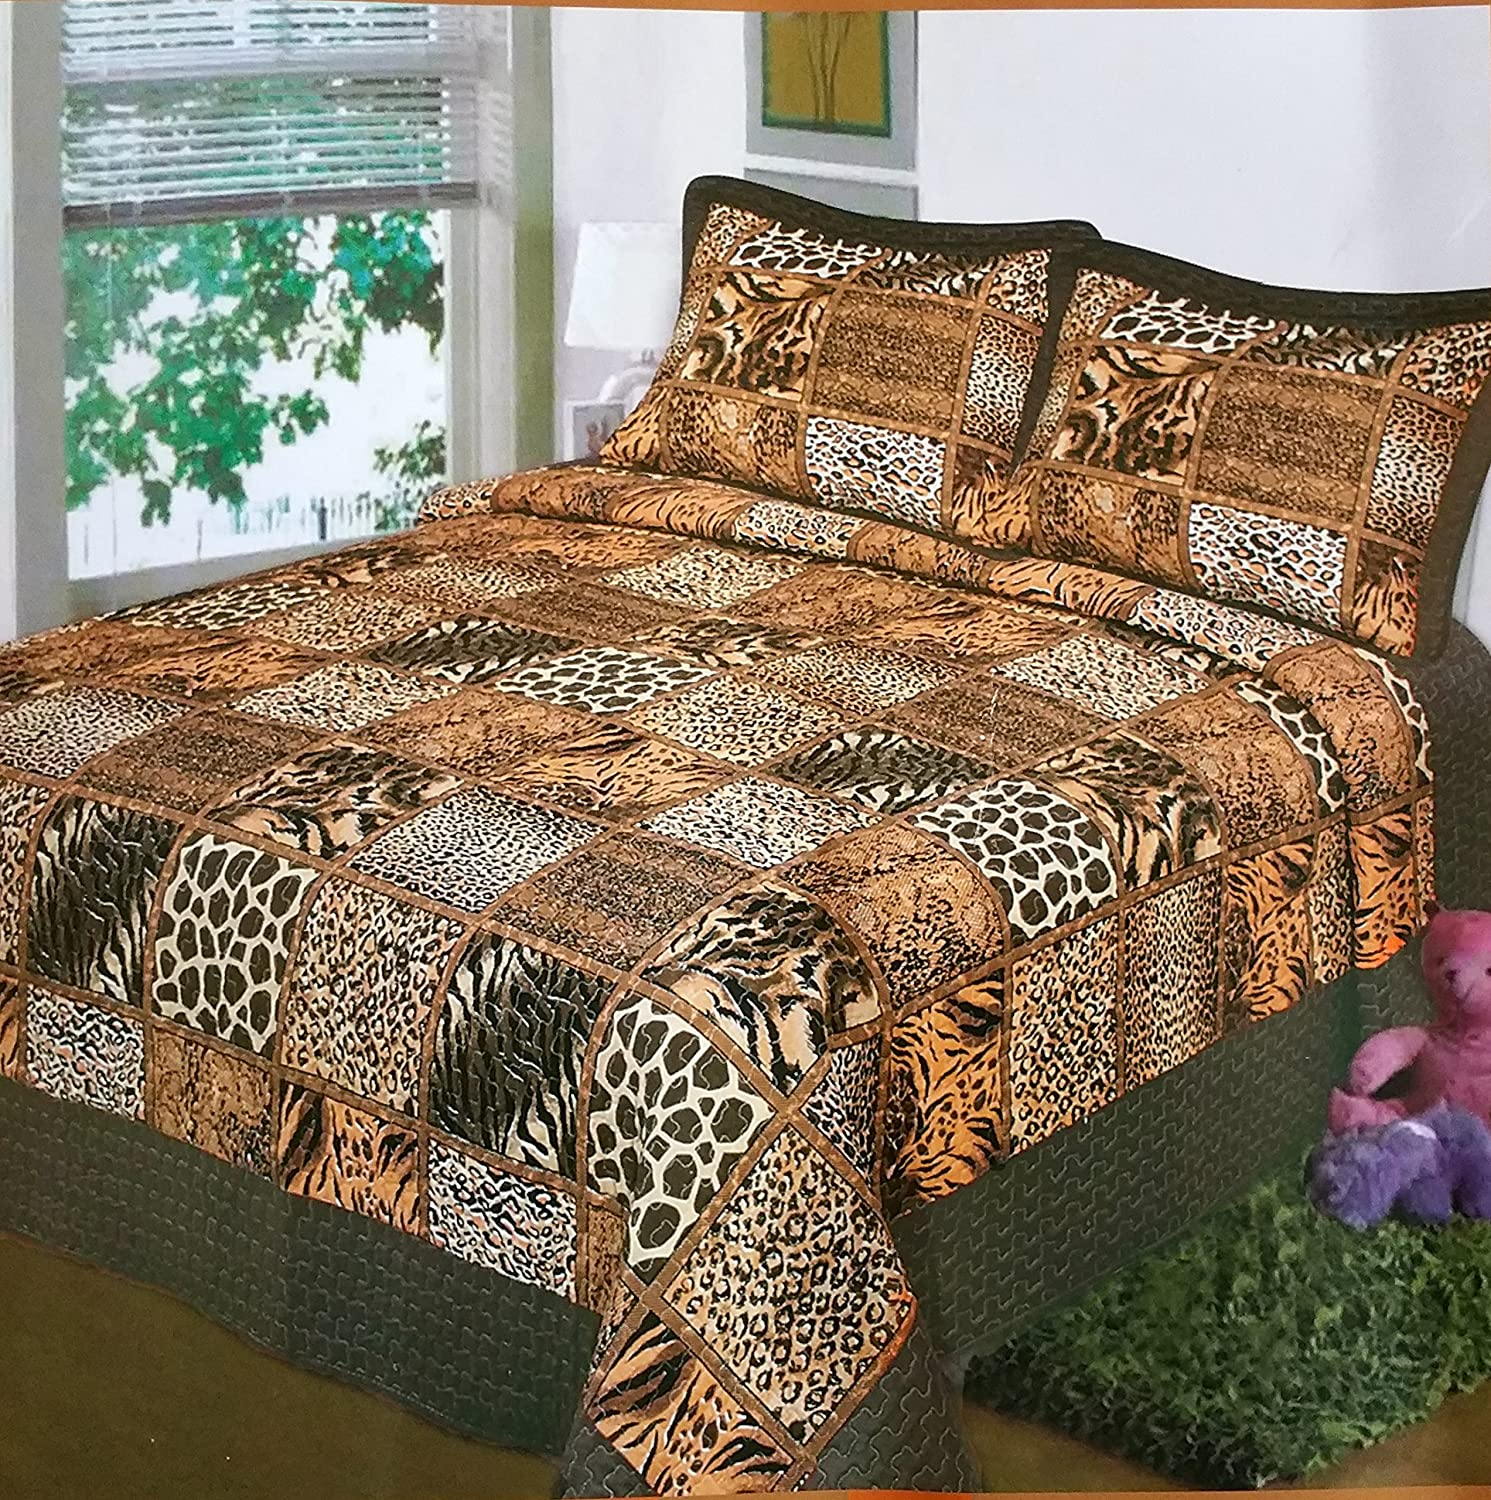 best tiger animal bedding sets - fancy collection  pc bedspread bed cover brown beige safari tiger giraffesnake leopard bedding (